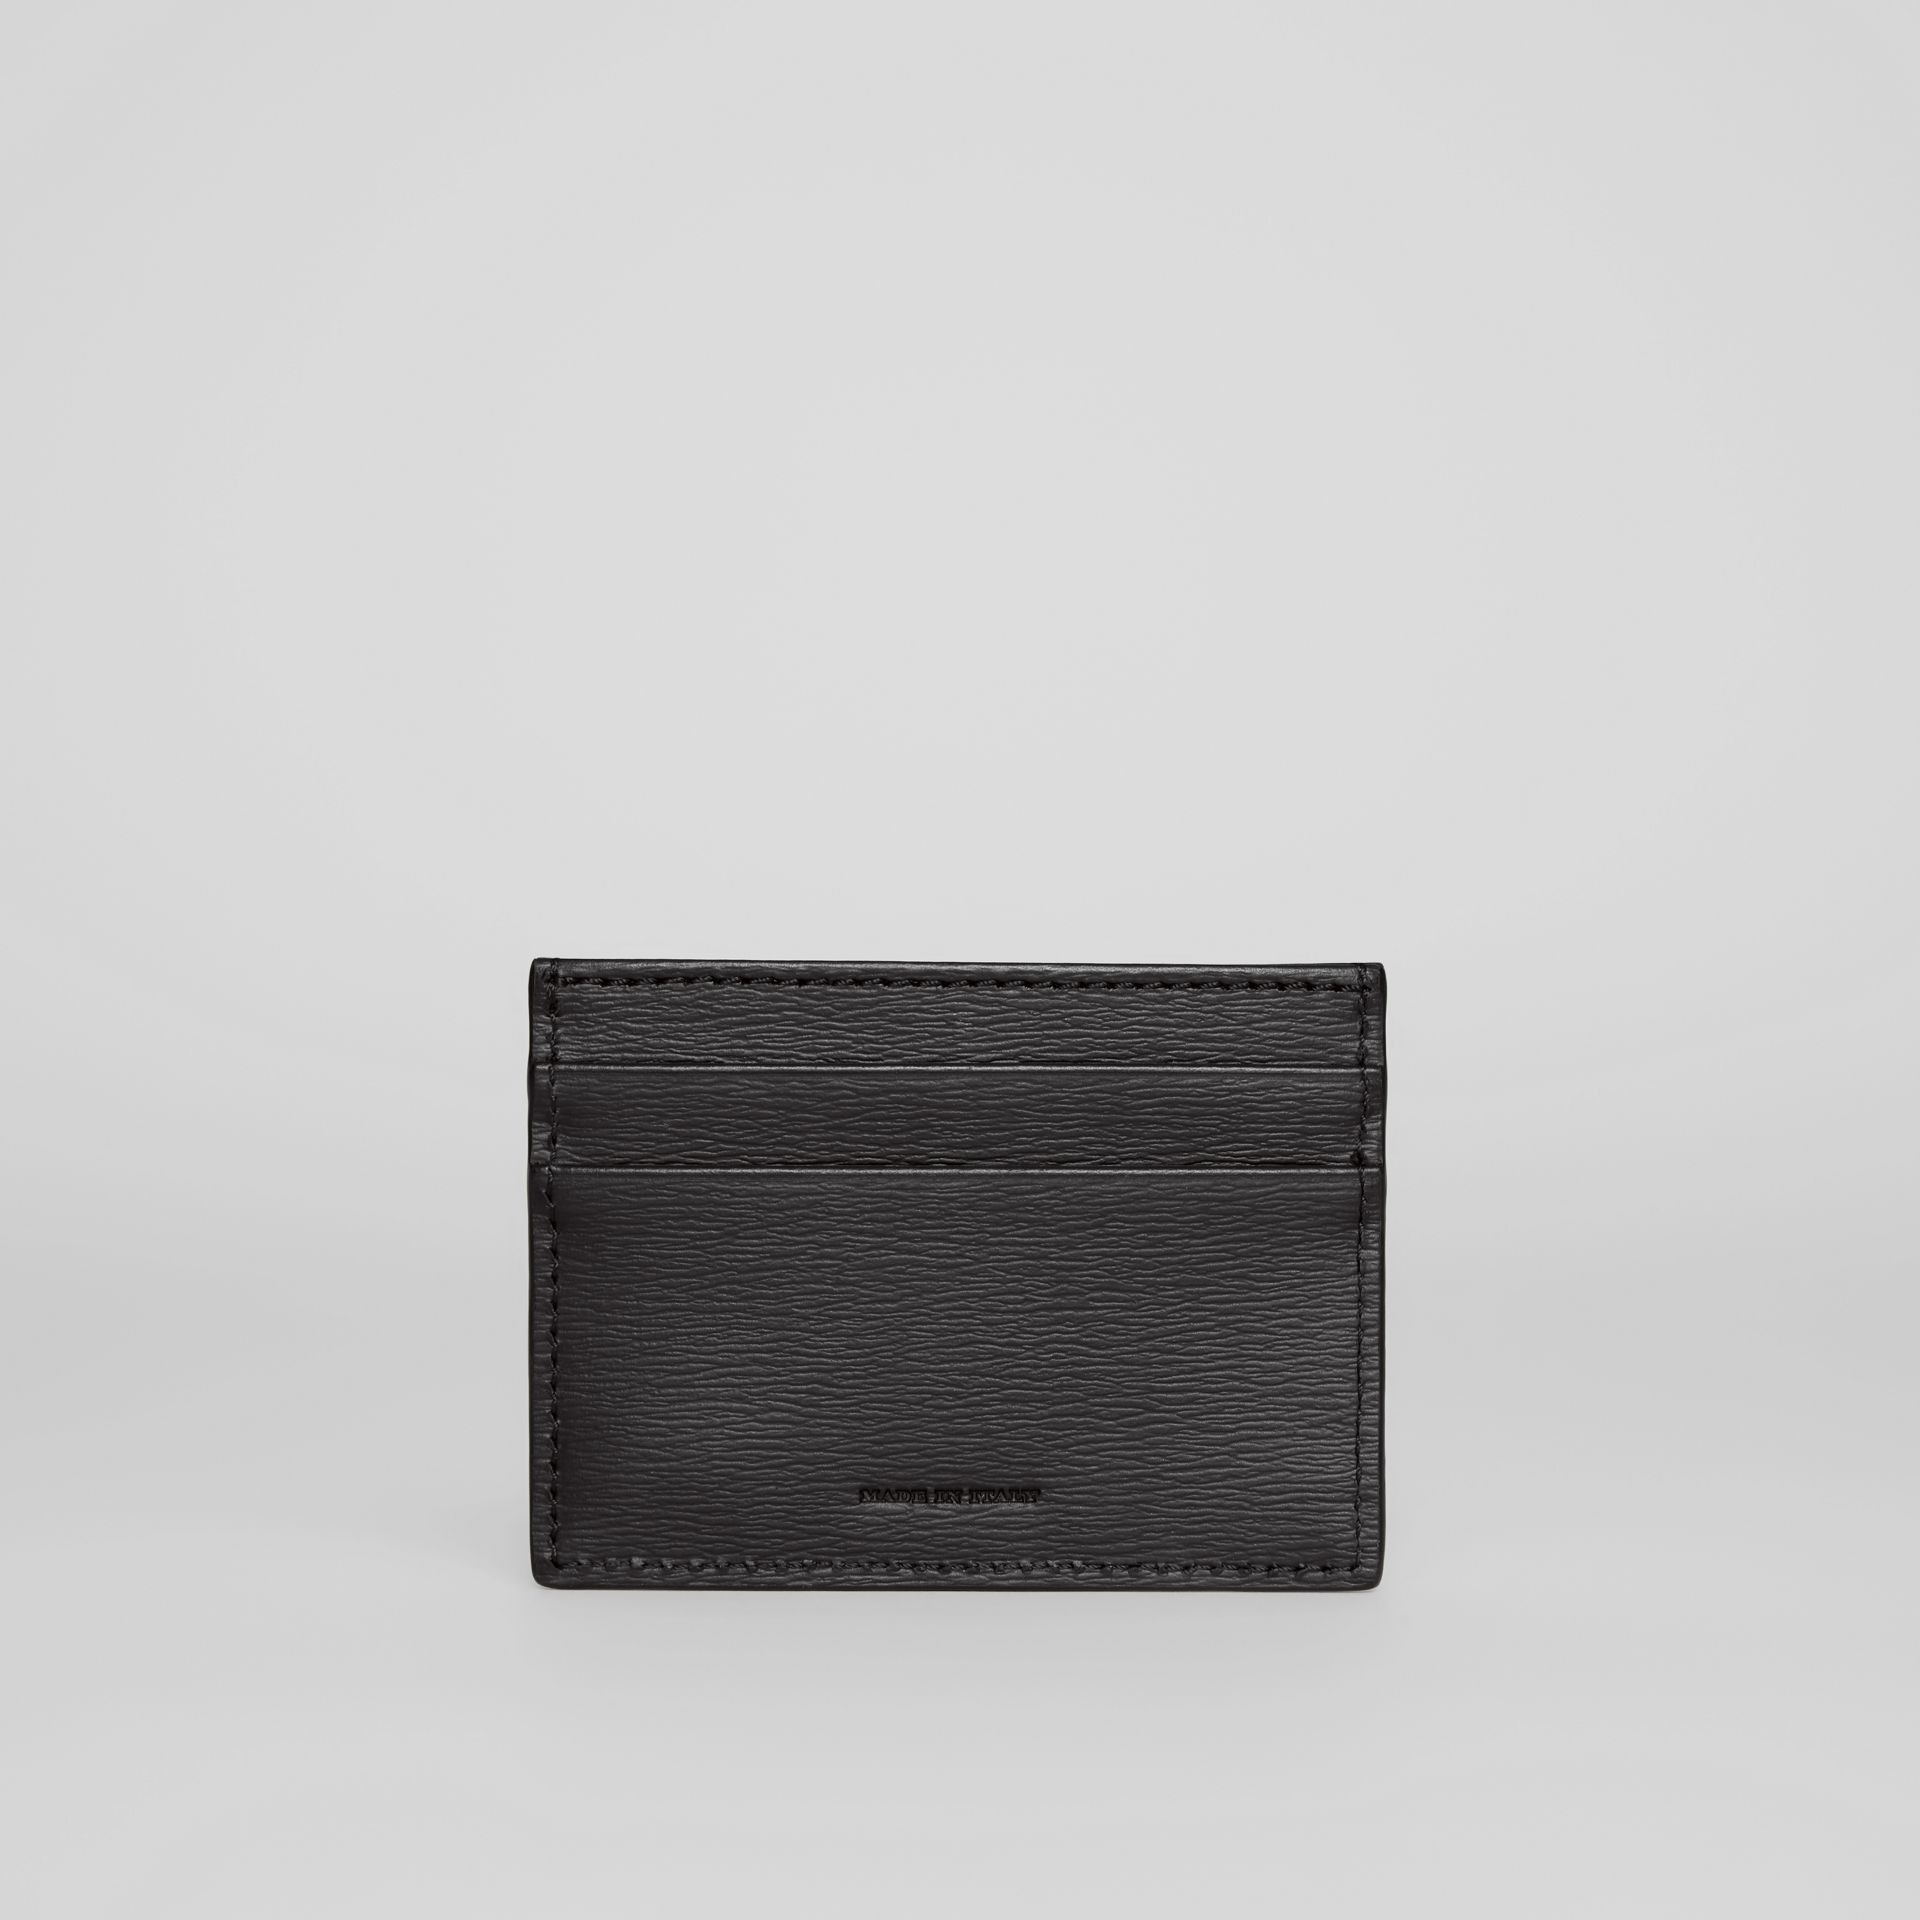 London Leather Card Case in Black - Men | Burberry - gallery image 4